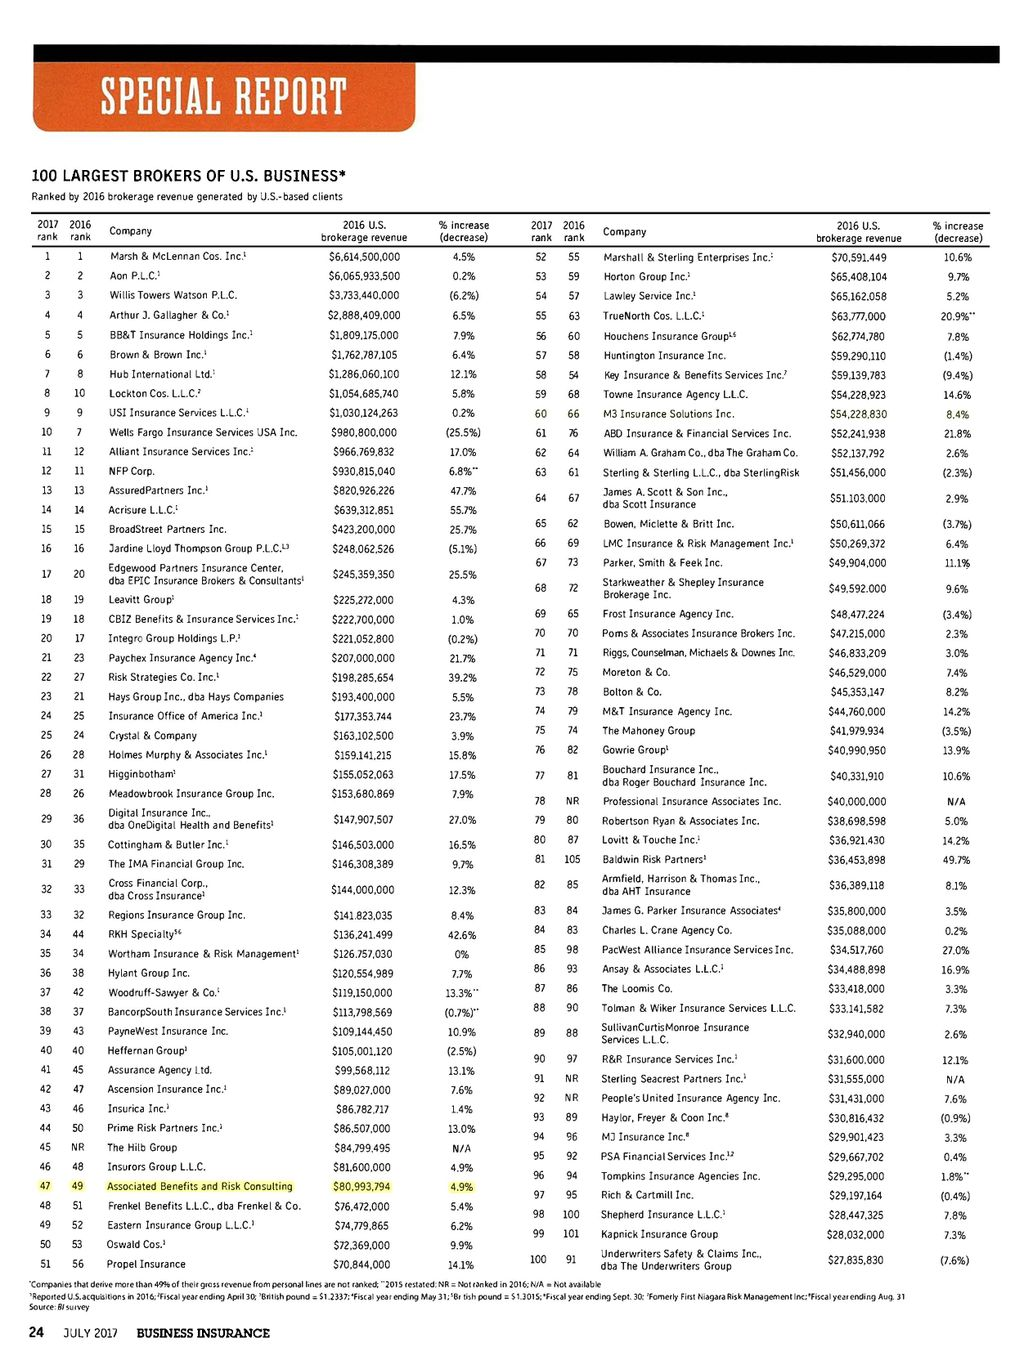 Associated Benefits And Risk Consulting Reaches 47th Place